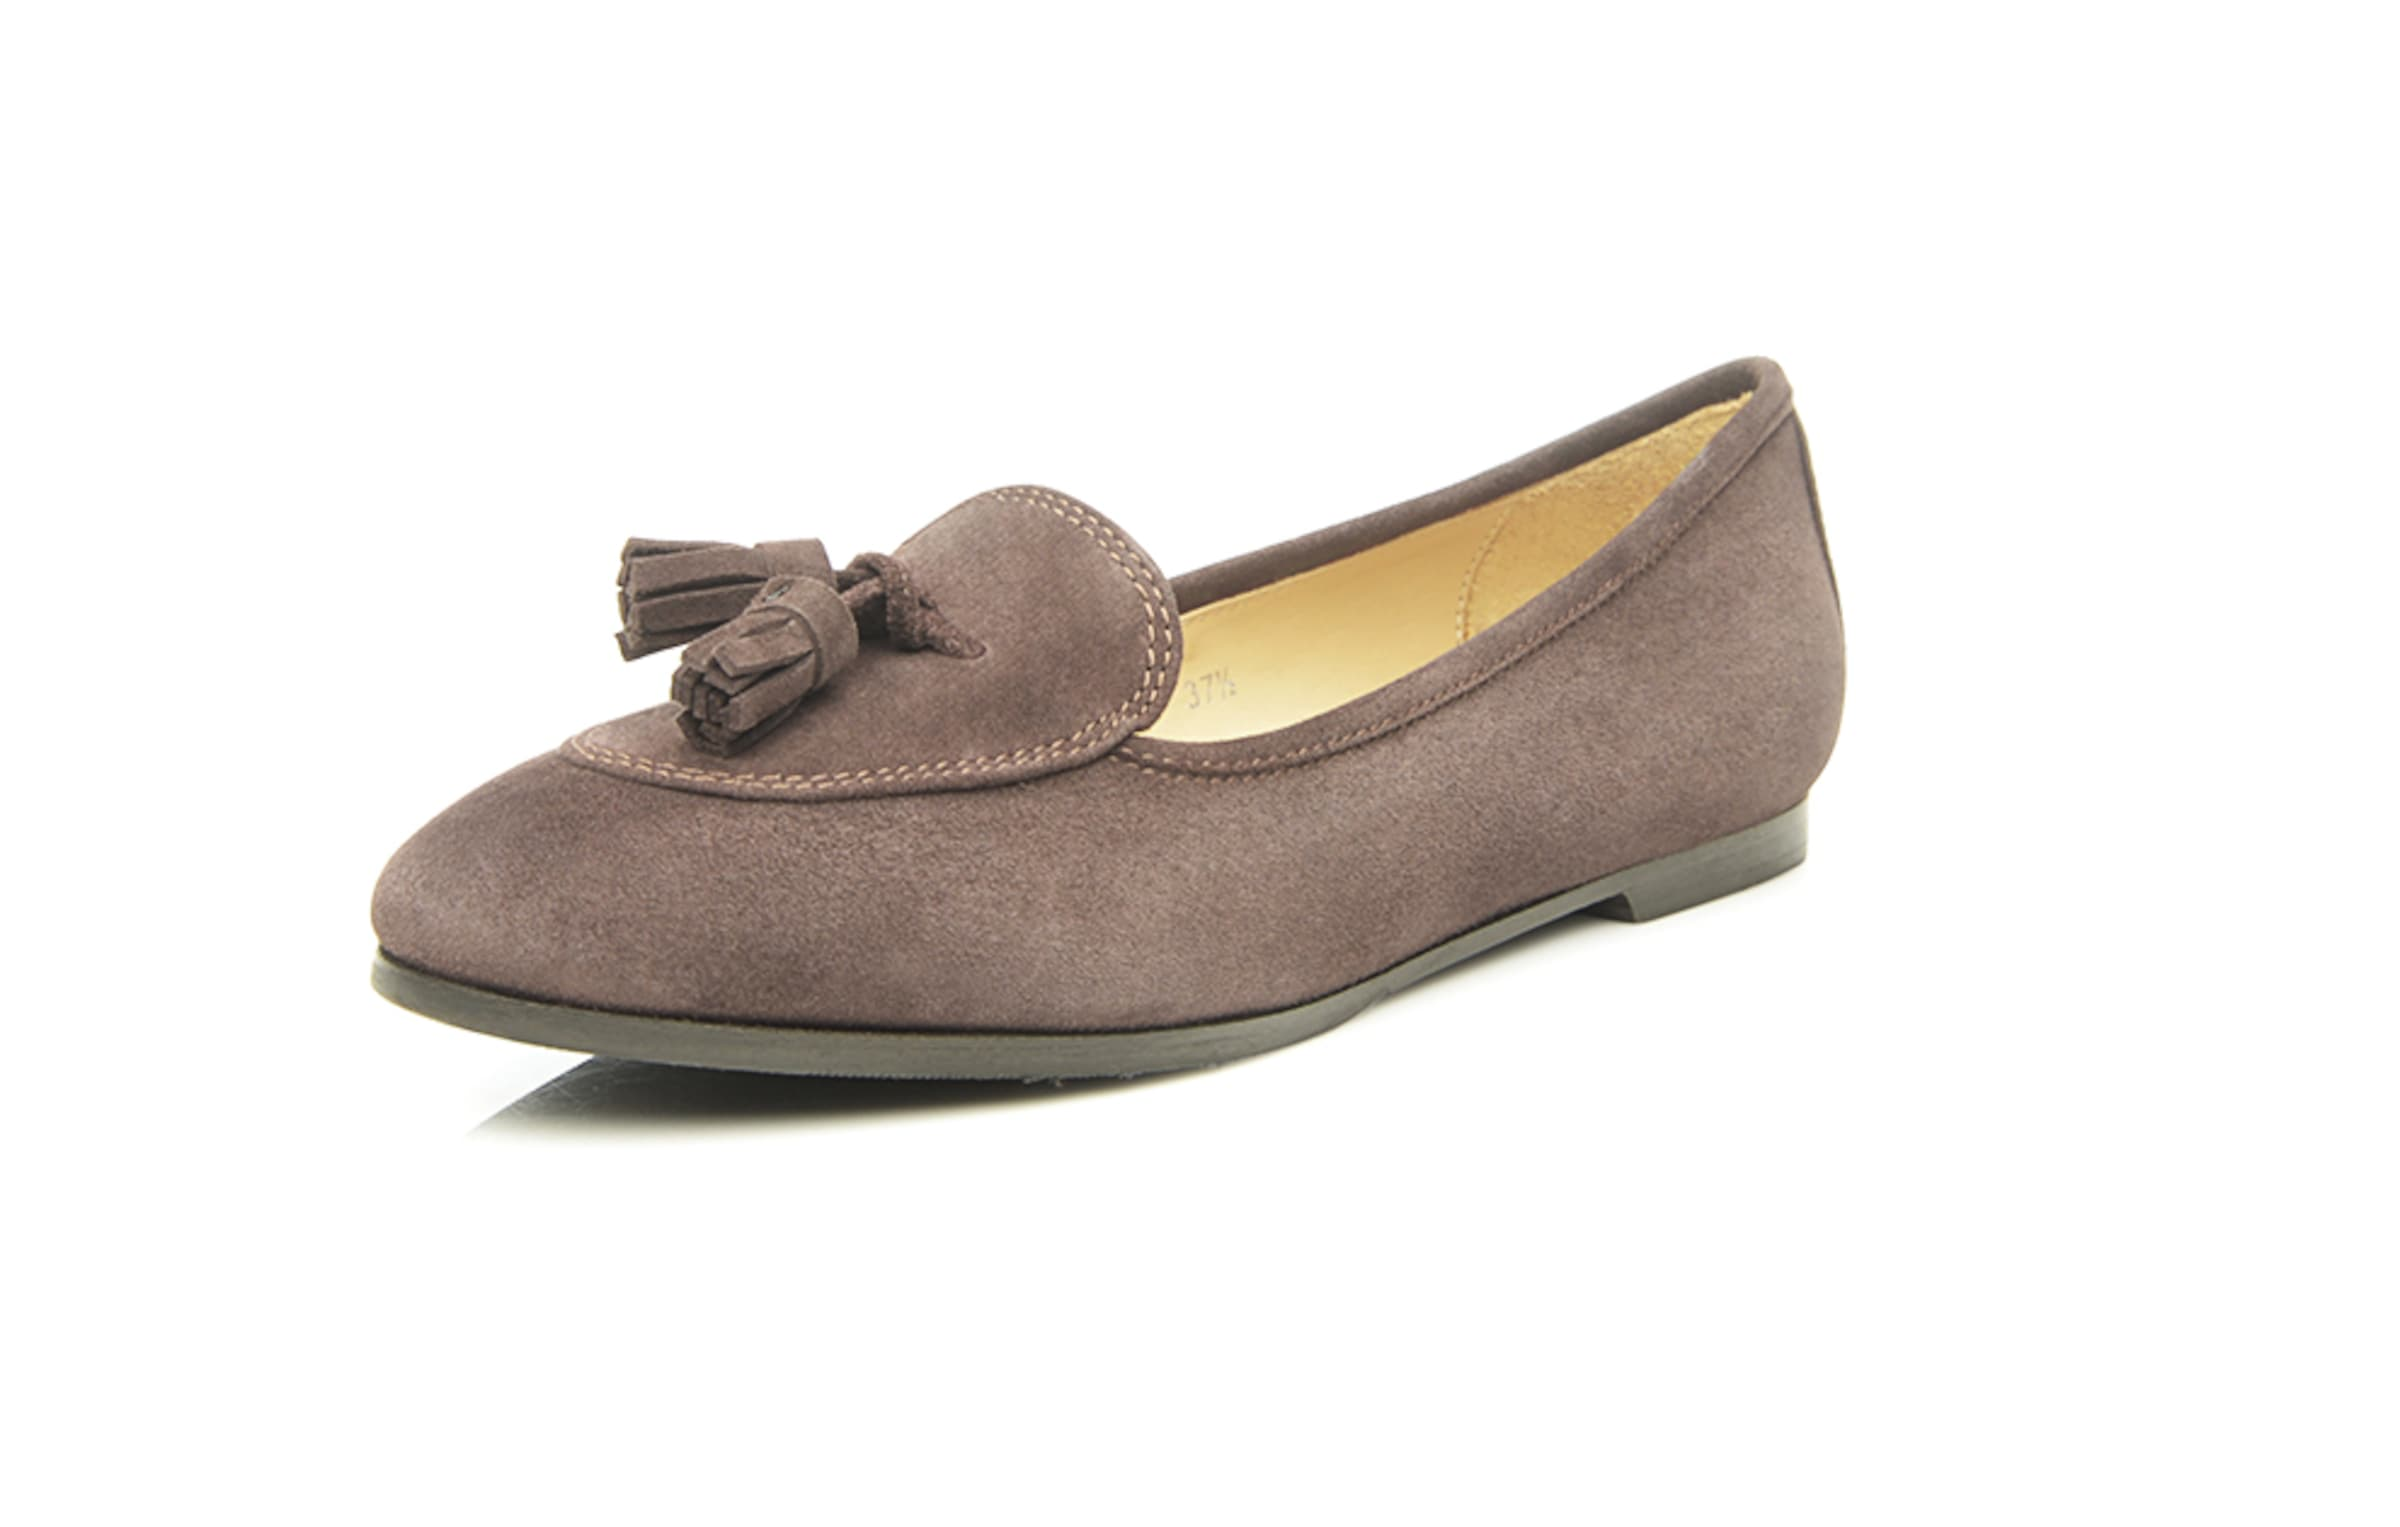 SHOEPASSION Loafer No. 69 WL Hohe Qualität